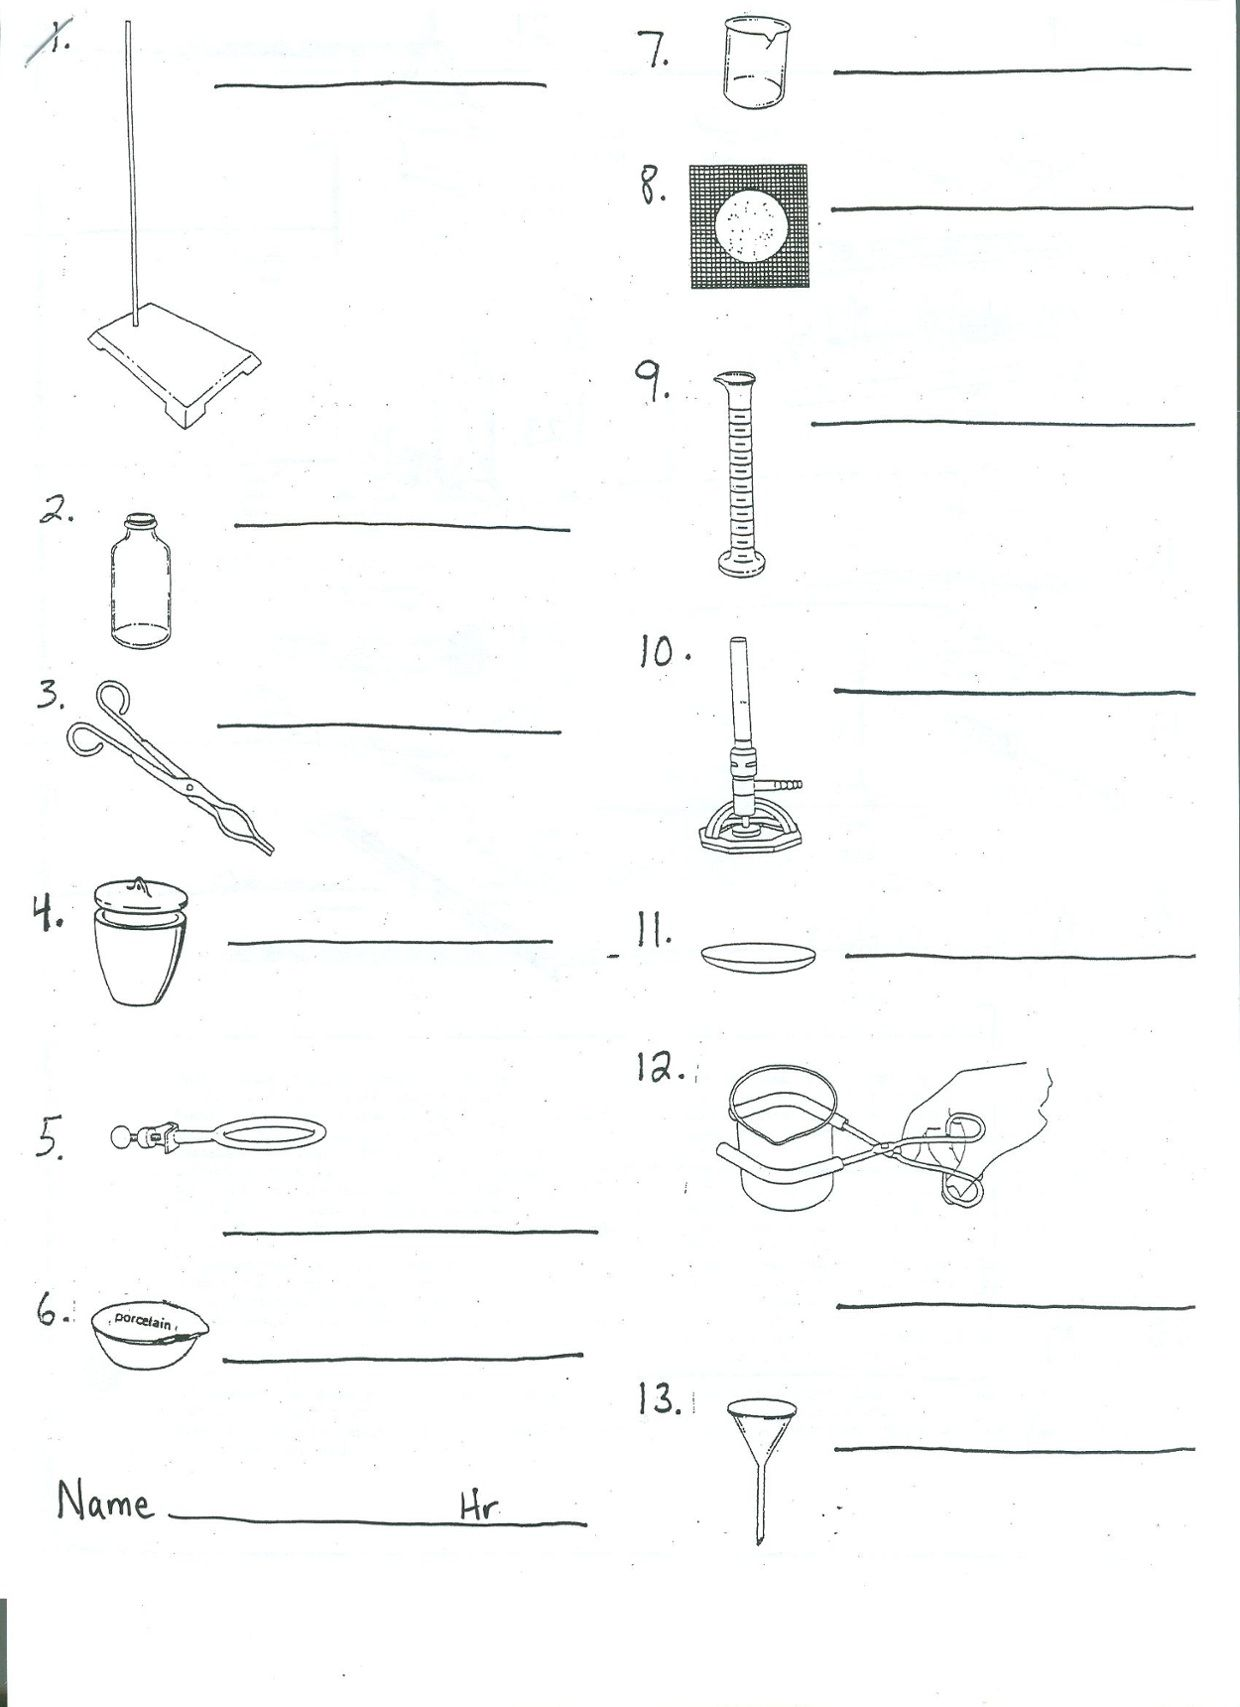 Worksheet On Lab Apparatus